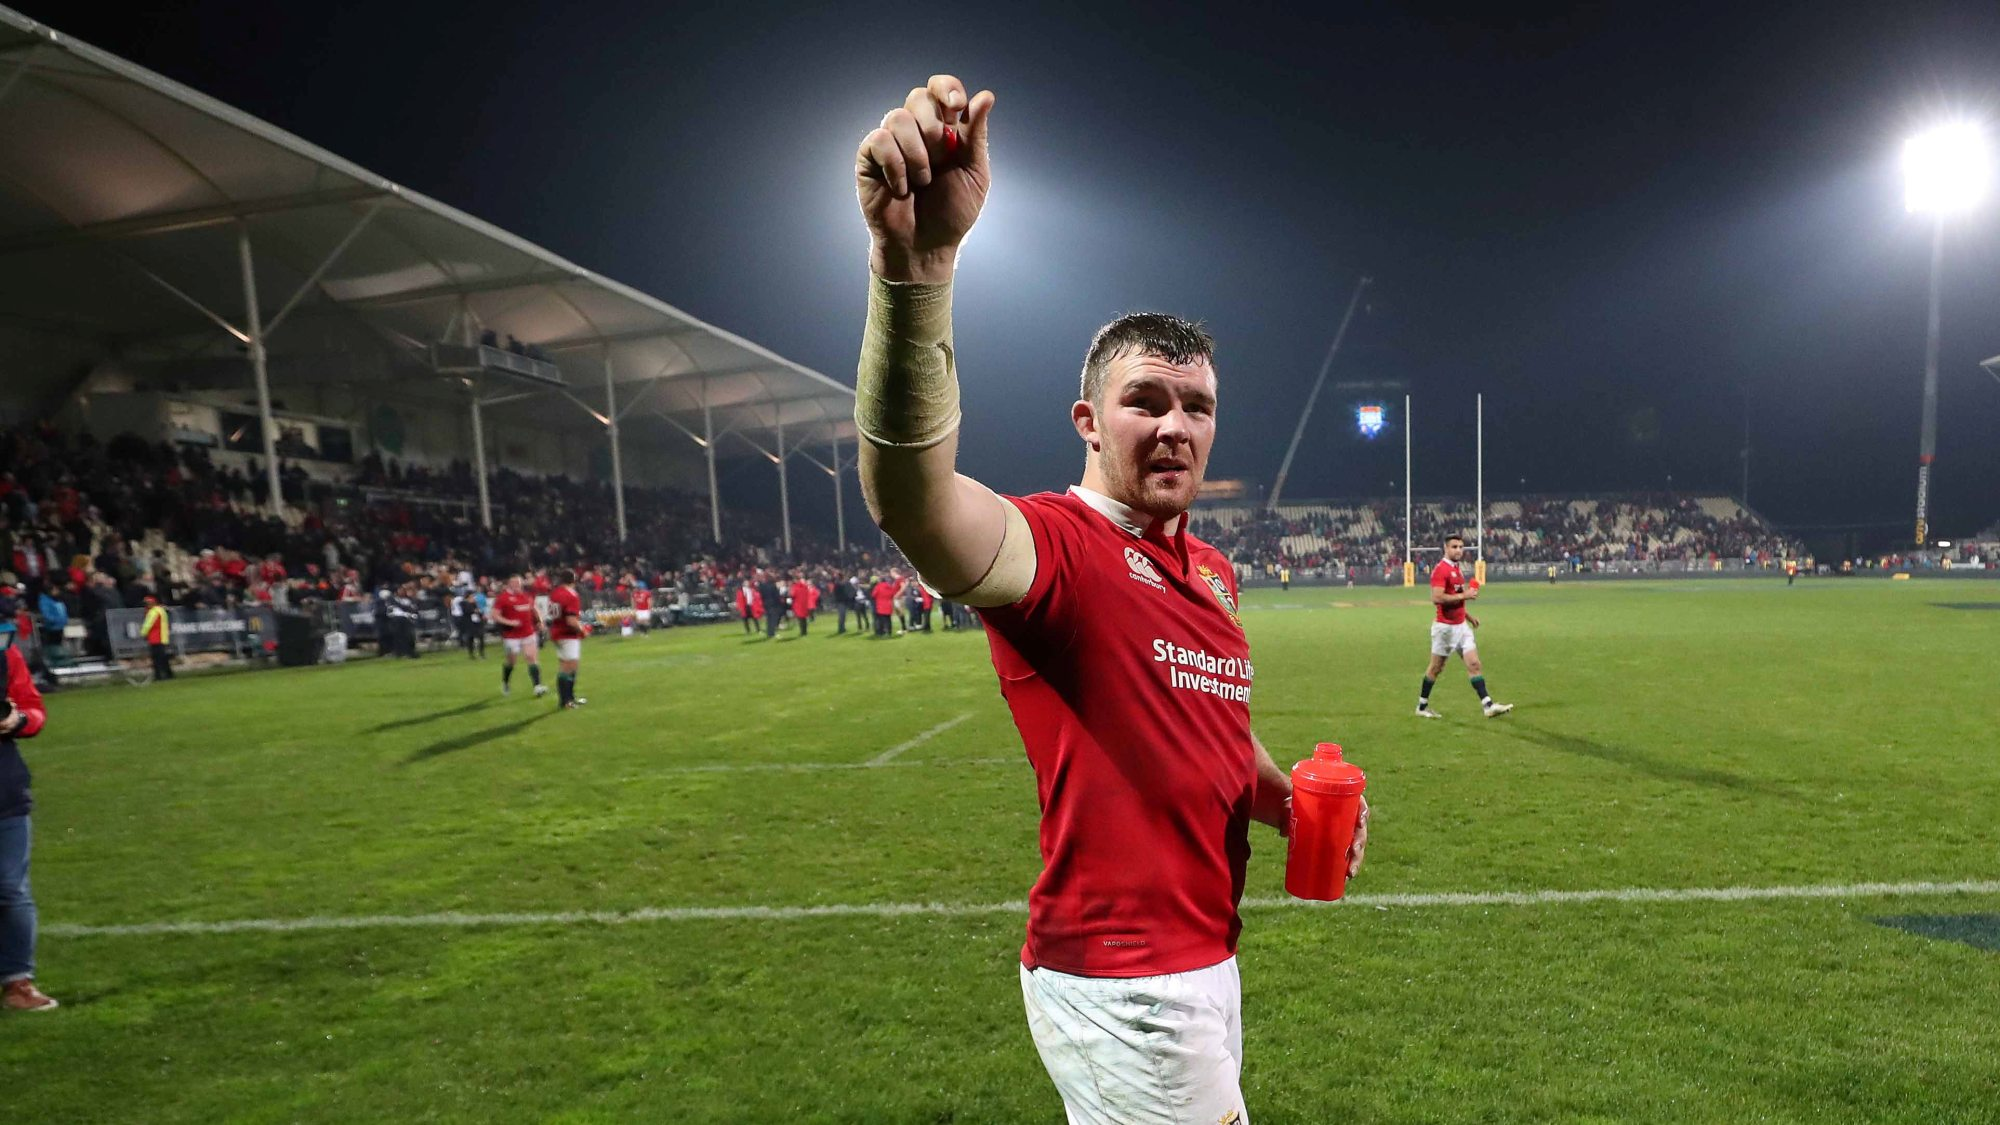 O'Mahony to captain British & Irish Lions in first Test